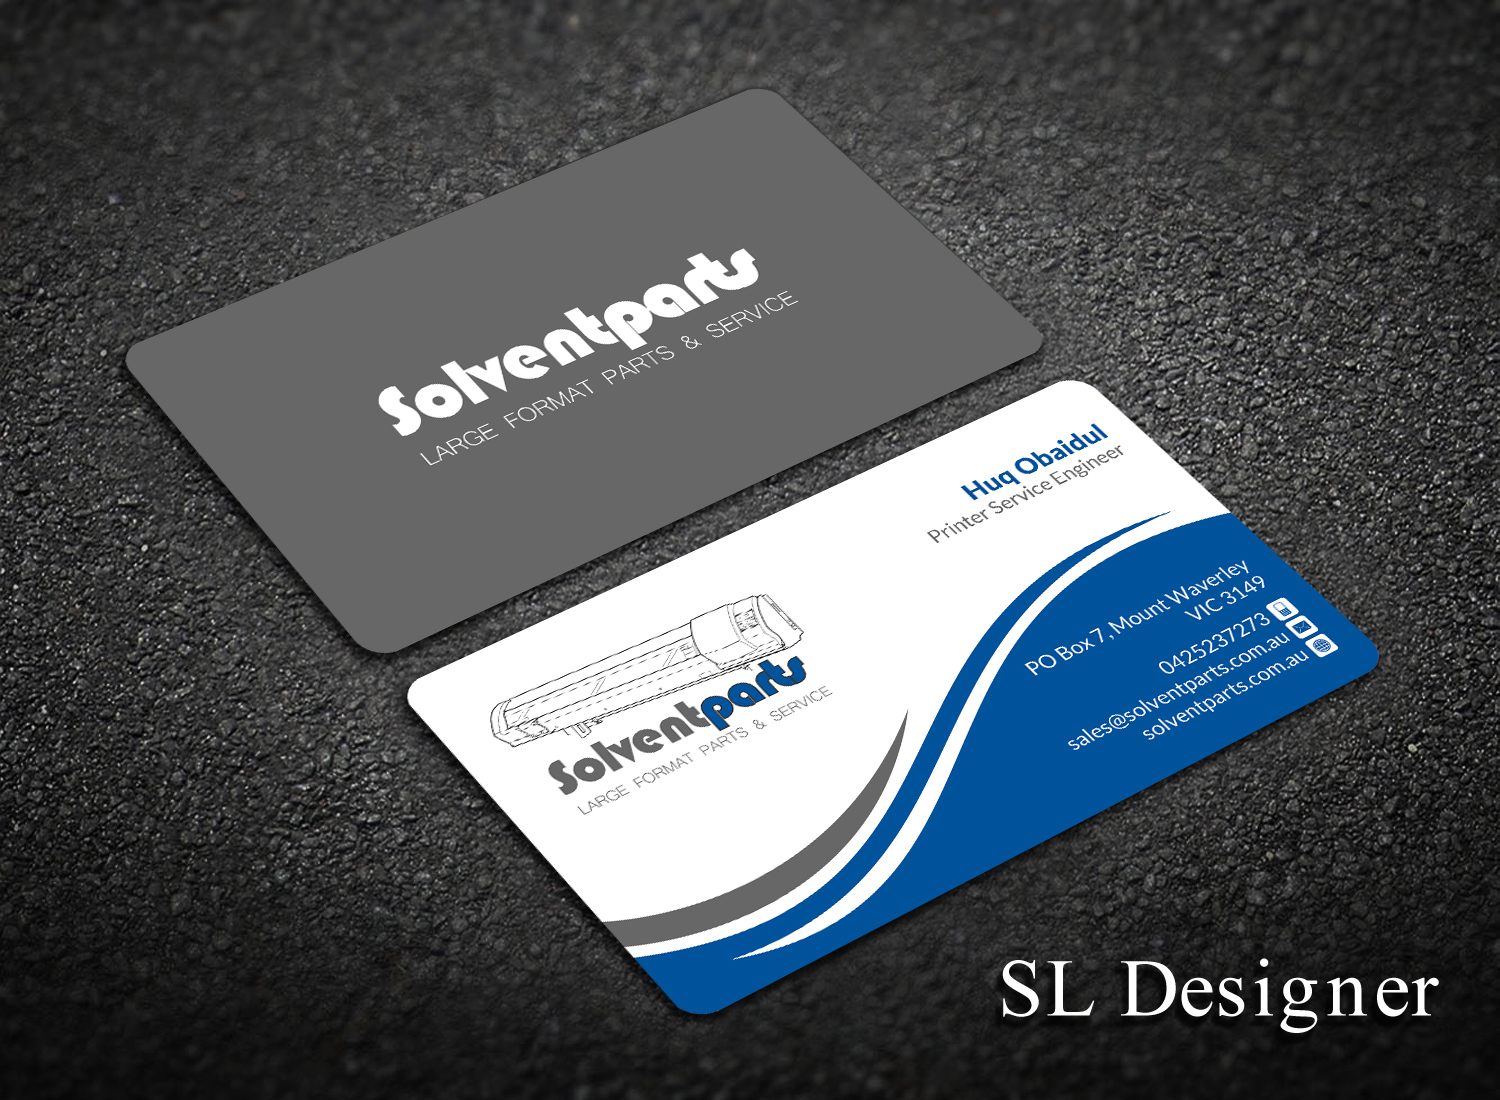 Personable conservative business business card design for business card design by sl designer for solventparts design 14746779 reheart Image collections